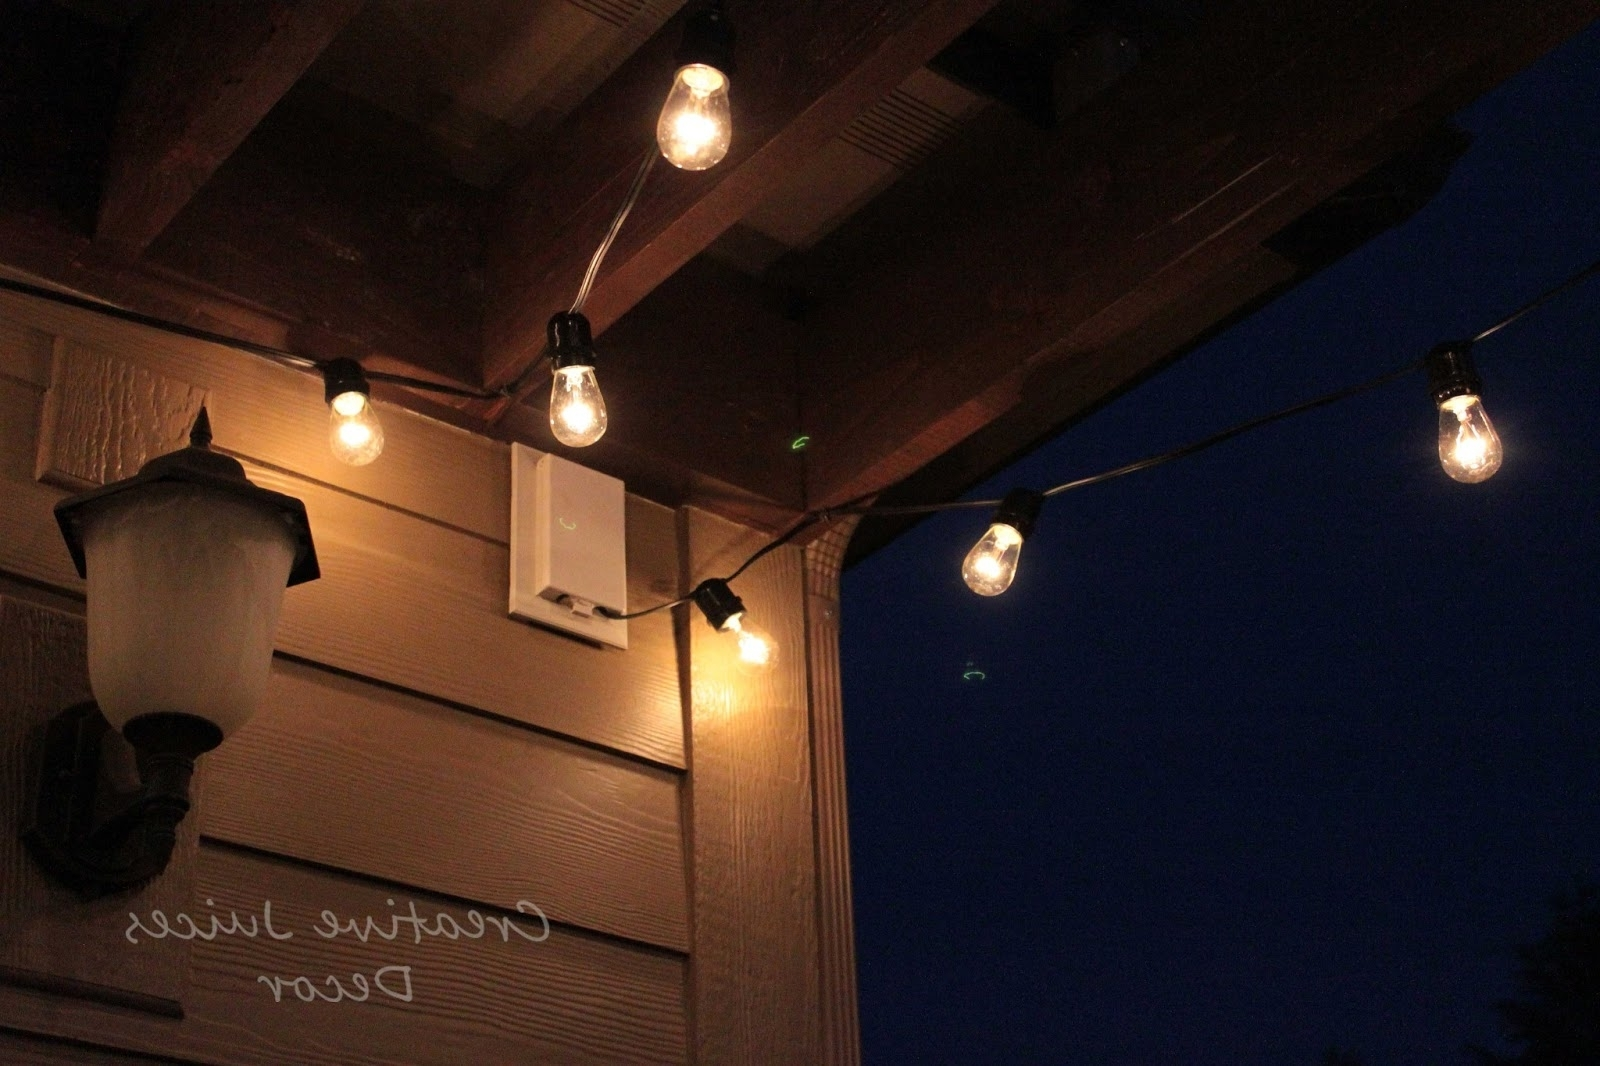 Creative Juices Decor: Adding String Patio Lights To The Pergola Regarding Current Solar Hanging Outdoor Patio Lights (View 2 of 20)